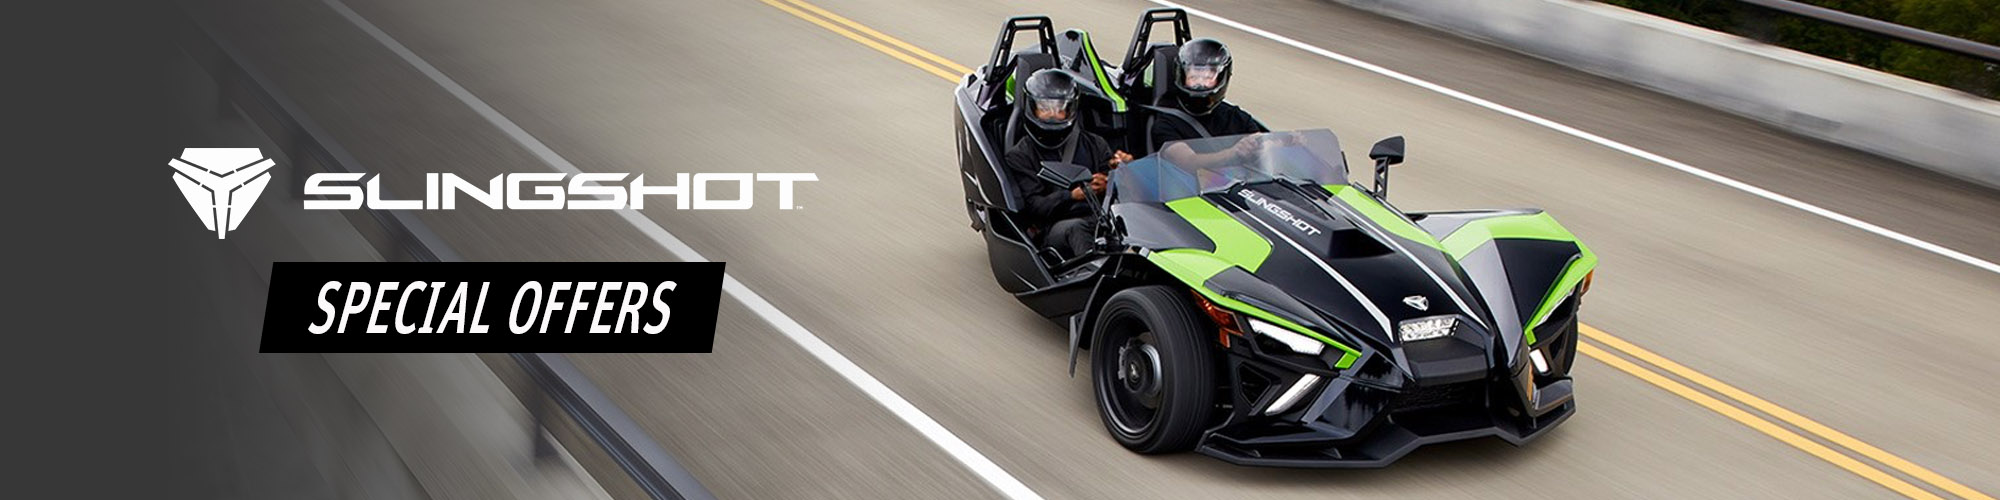 Slingshot Specials at Brenny's Motorcycle Clinic, Bettendorf, IA 52722